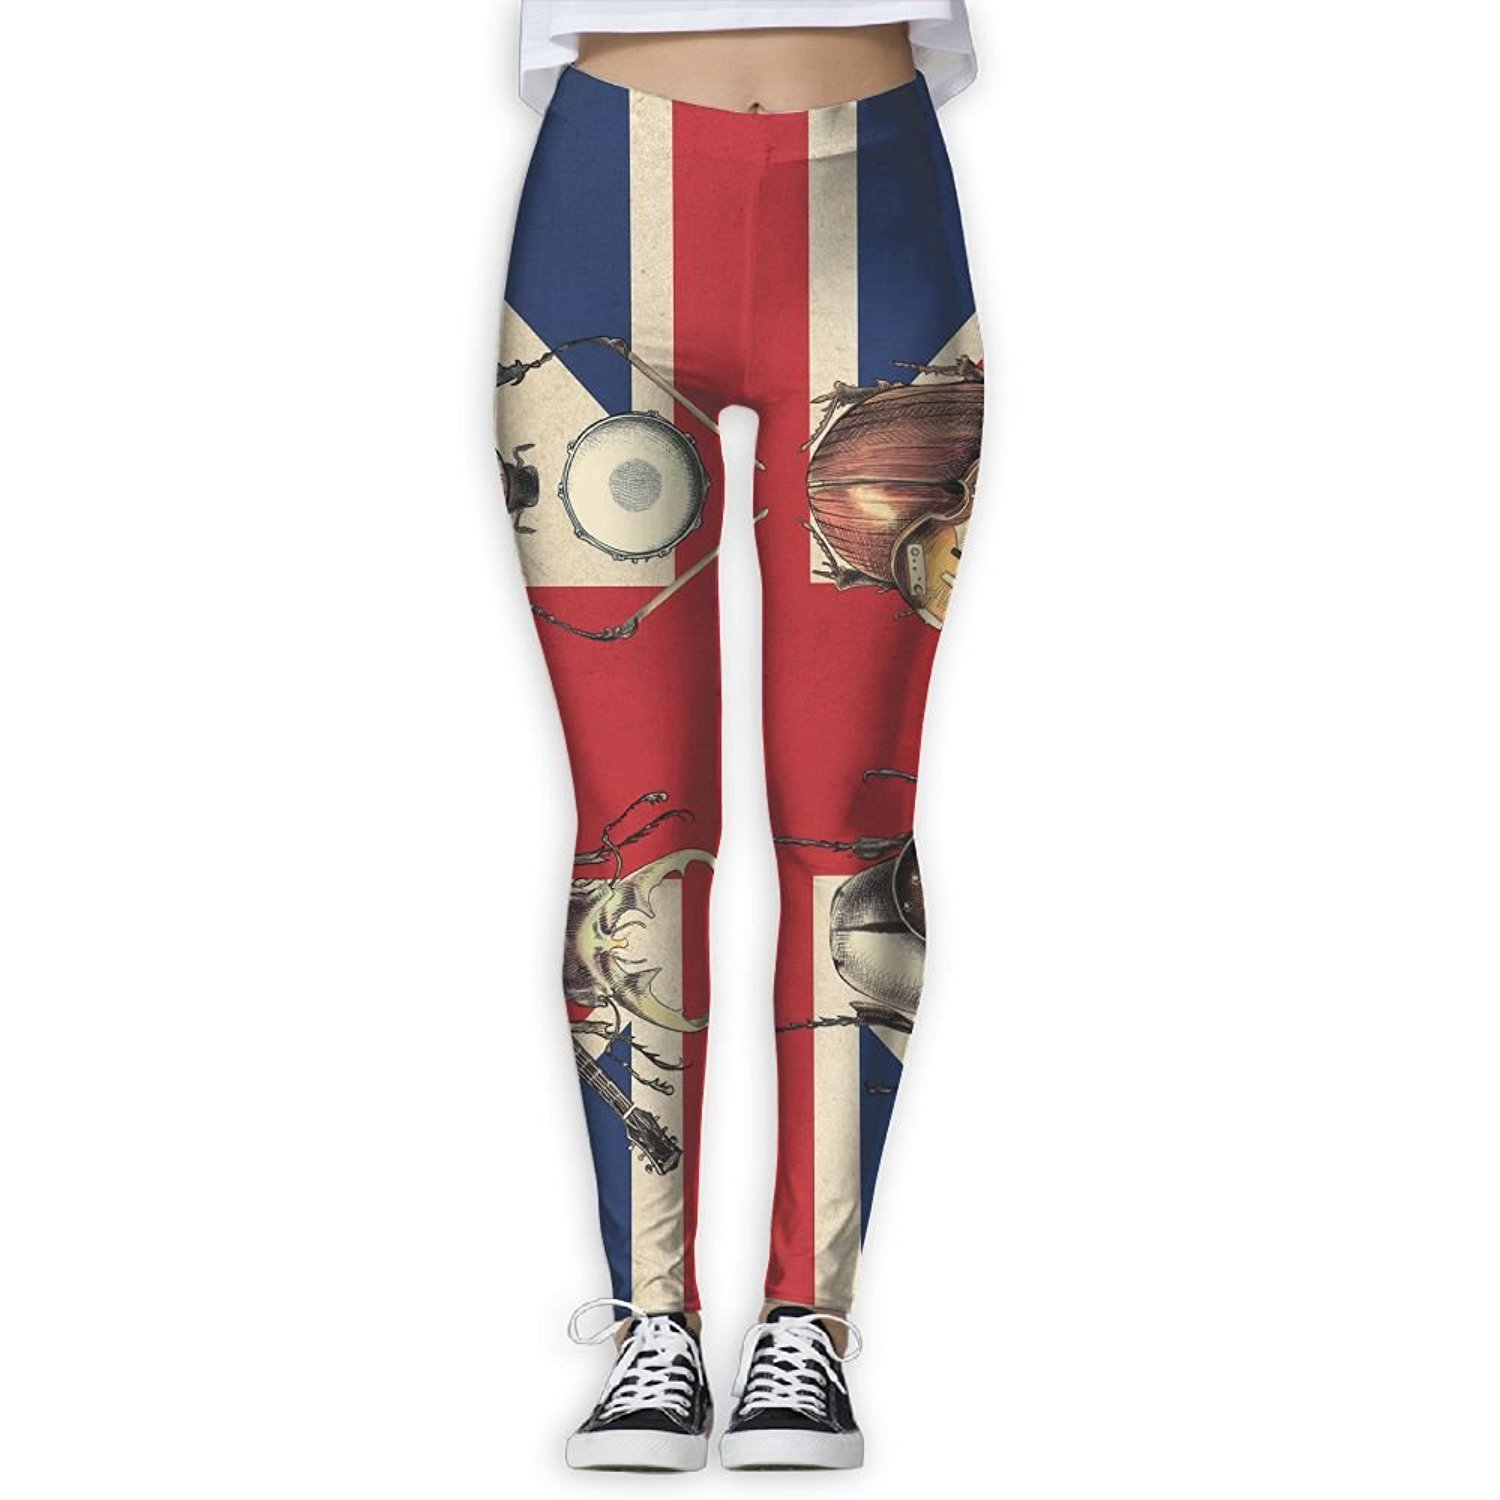 9a16416acac885 Get Quotations · Paullaker Yoga Pants, British Flag Music Insects Women's  Yoga Pants Tummy Control Workout Running Yoga